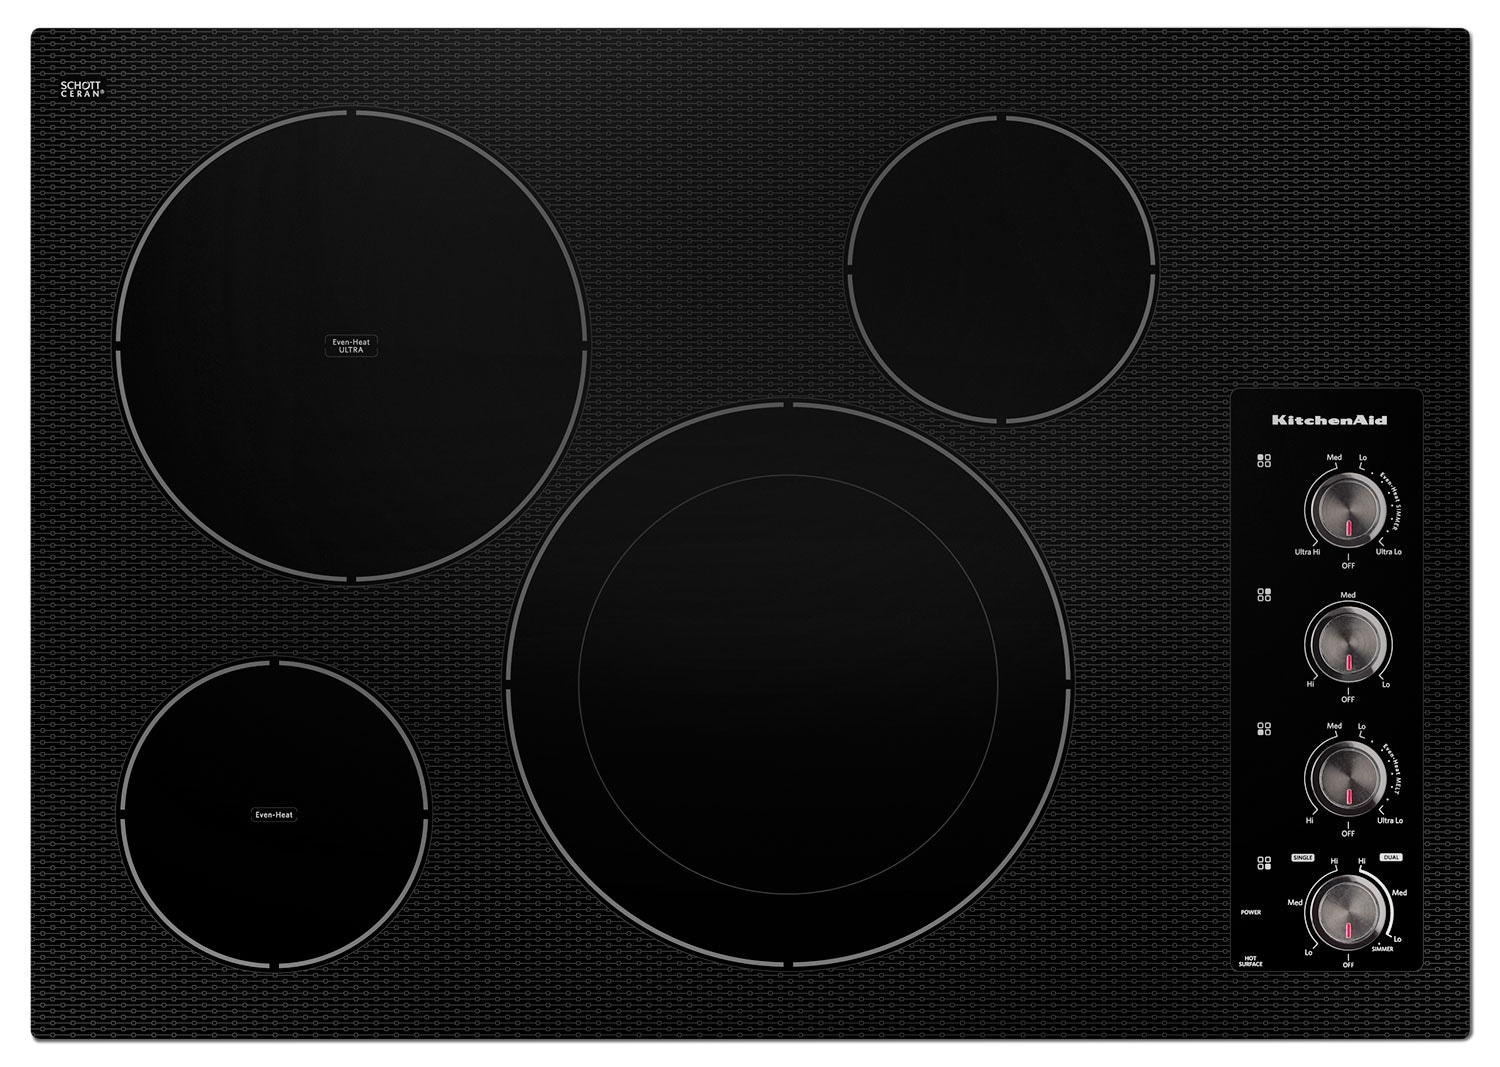 "Cooking Products - KitchenAid 30"" Electric Cooktop with 4 Radiant Elements - Black"